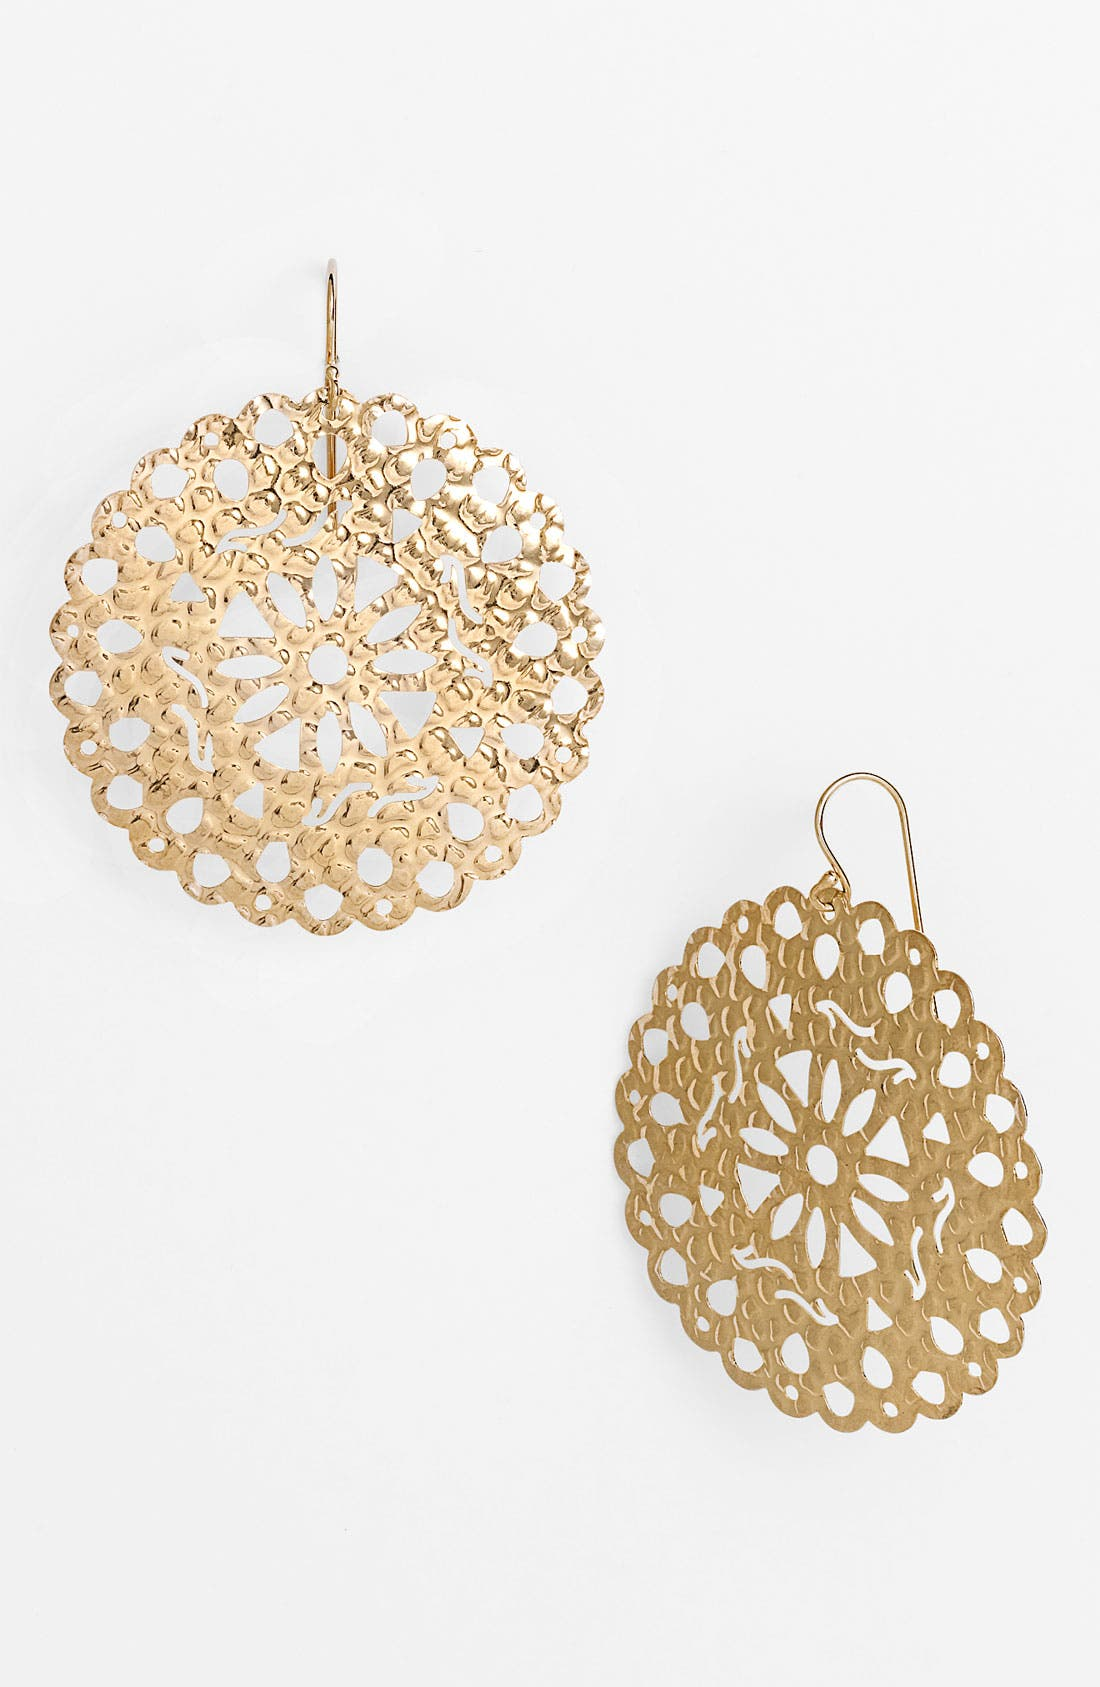 Alternate Image 1 Selected - Argento Vivo 'Artisanal Lace' Round Drop Earrings (Nordstrom Exclusive)